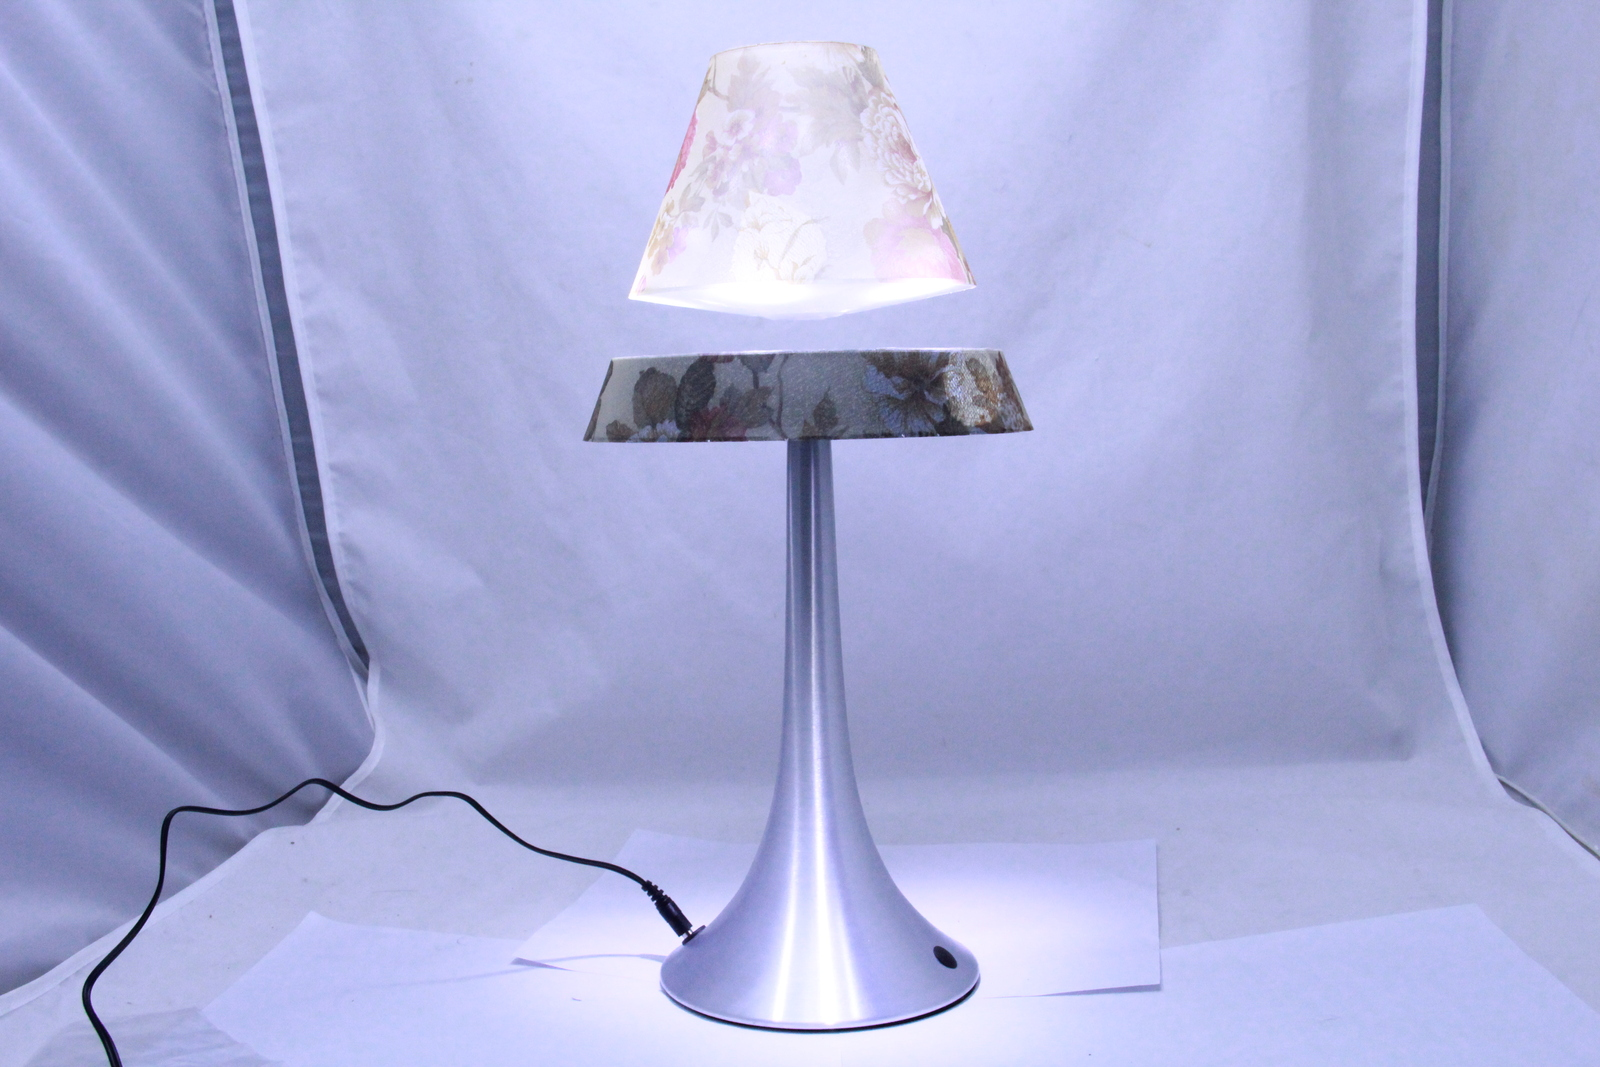 The Amazing Floating/Levitating Lamp - Floral Pattern Base and Shade -New in Box